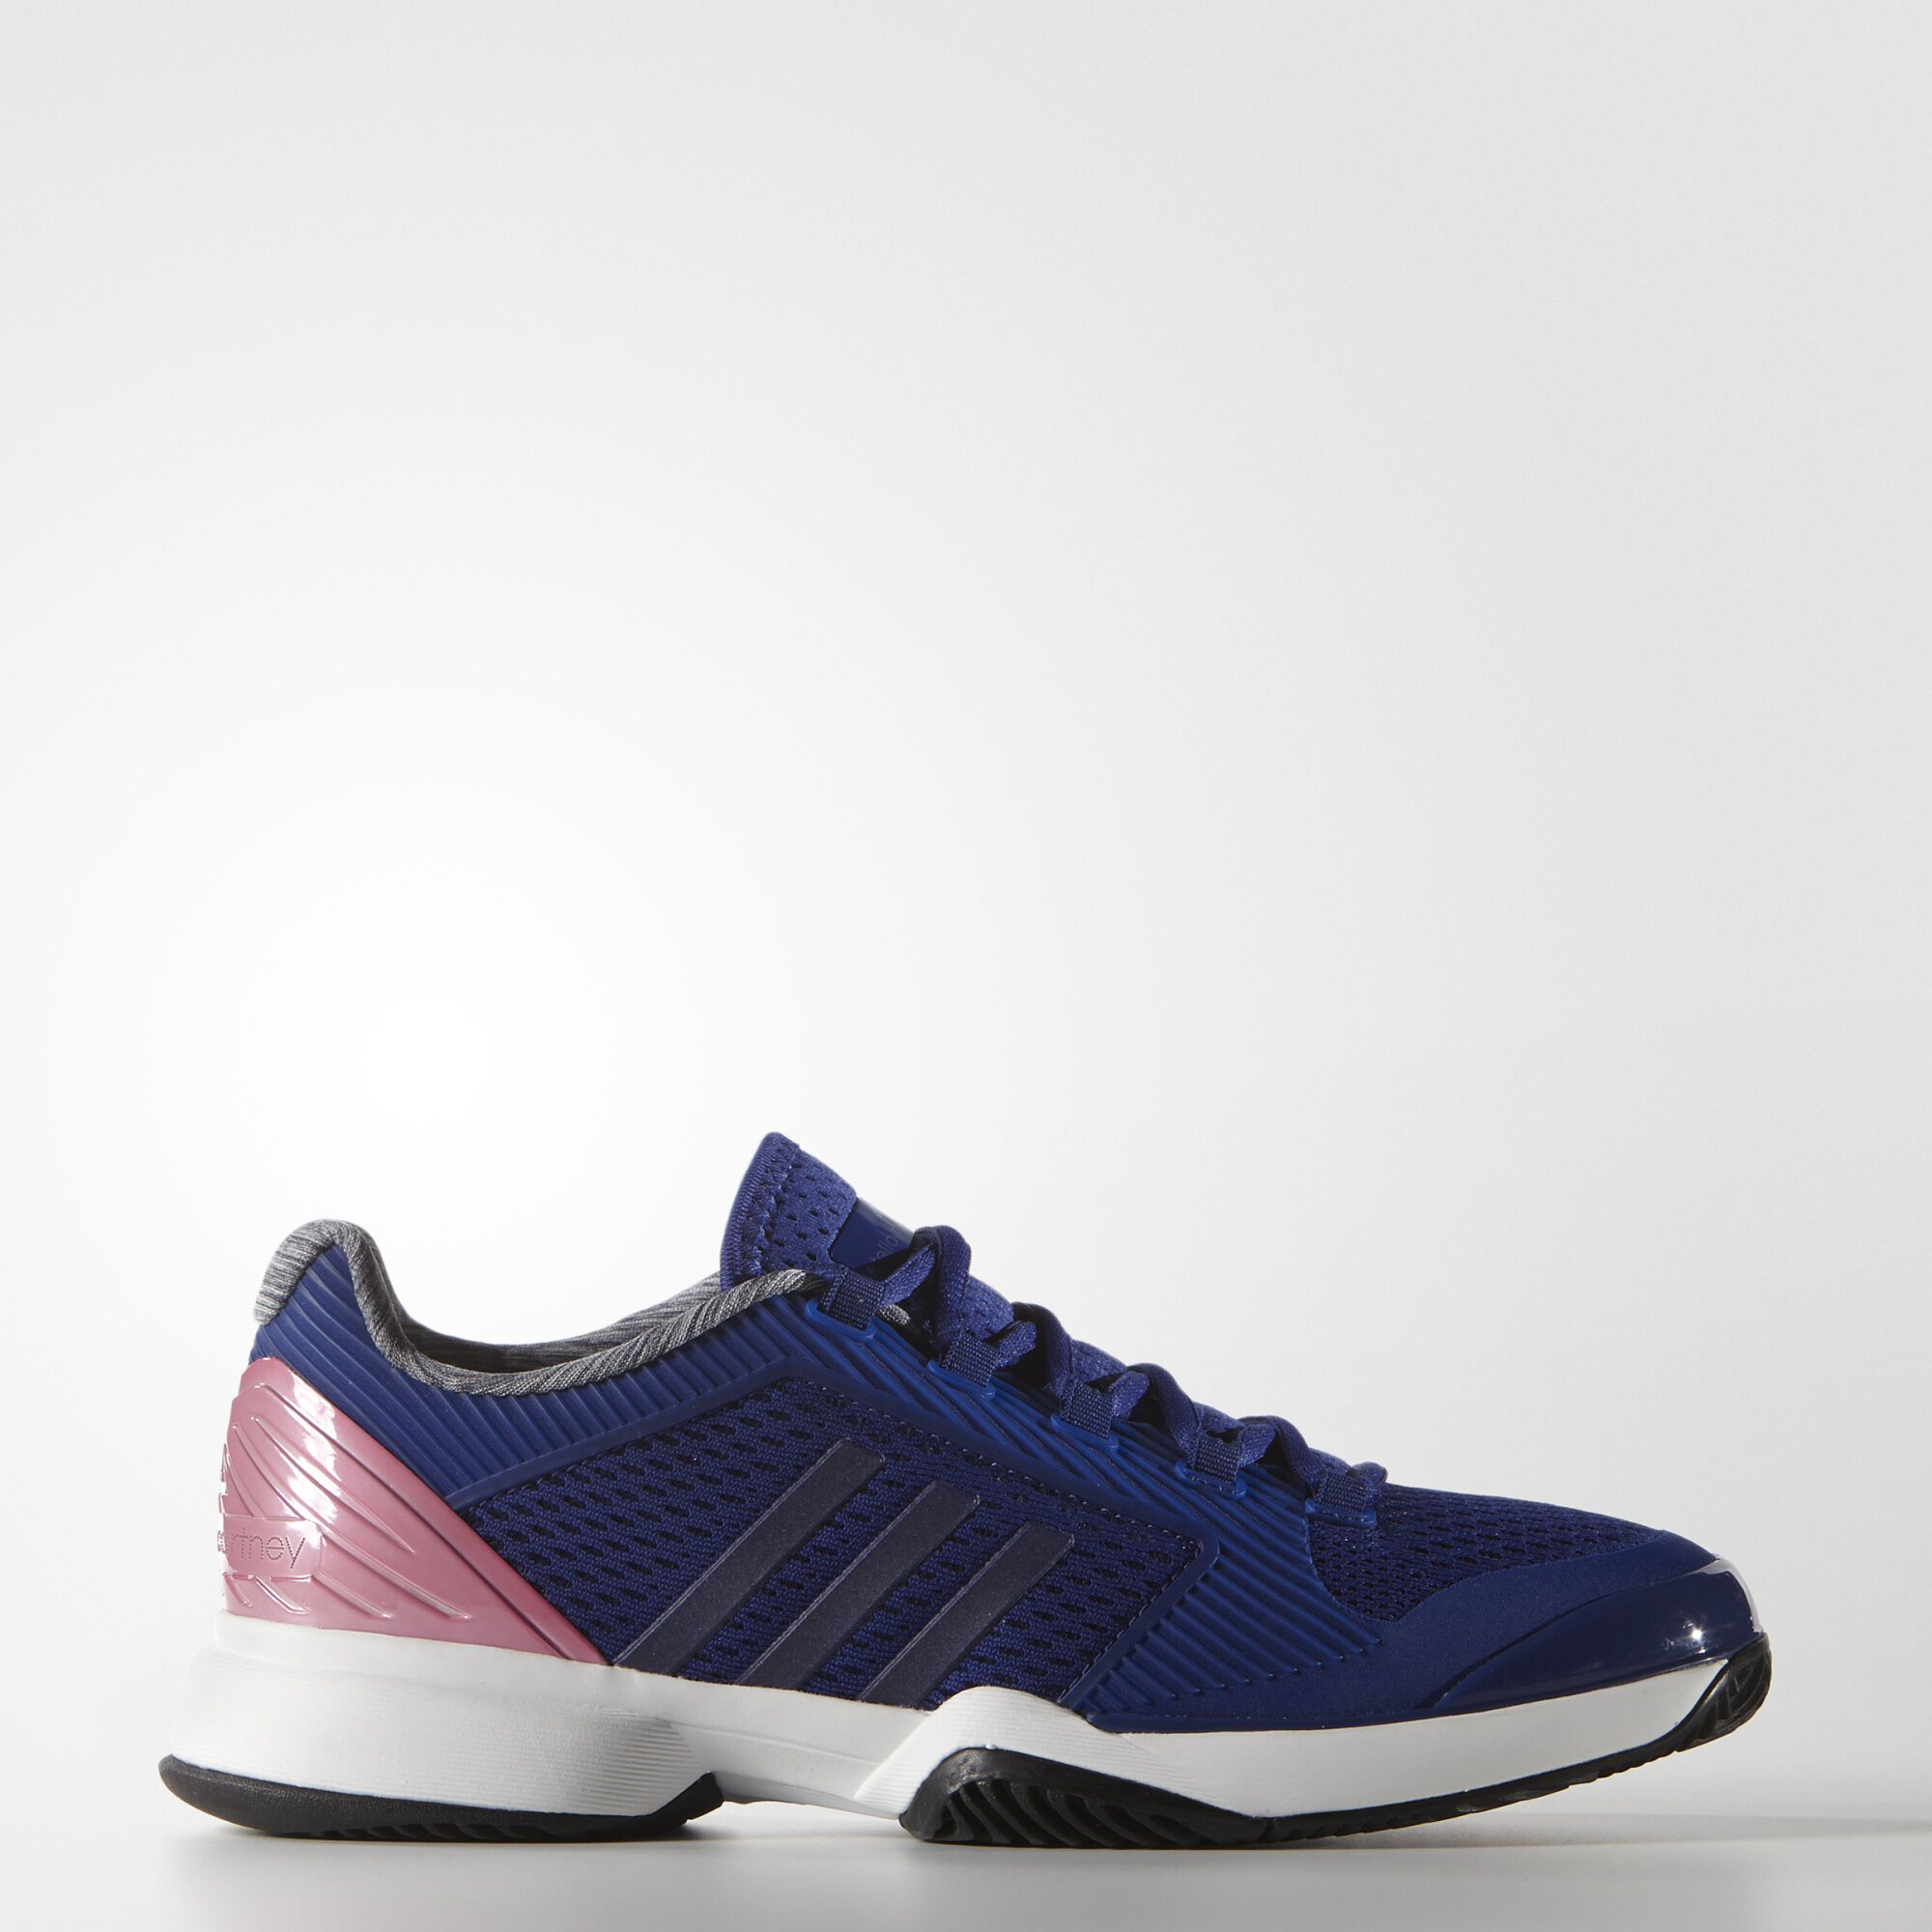 Adidas Neo Baseline Review